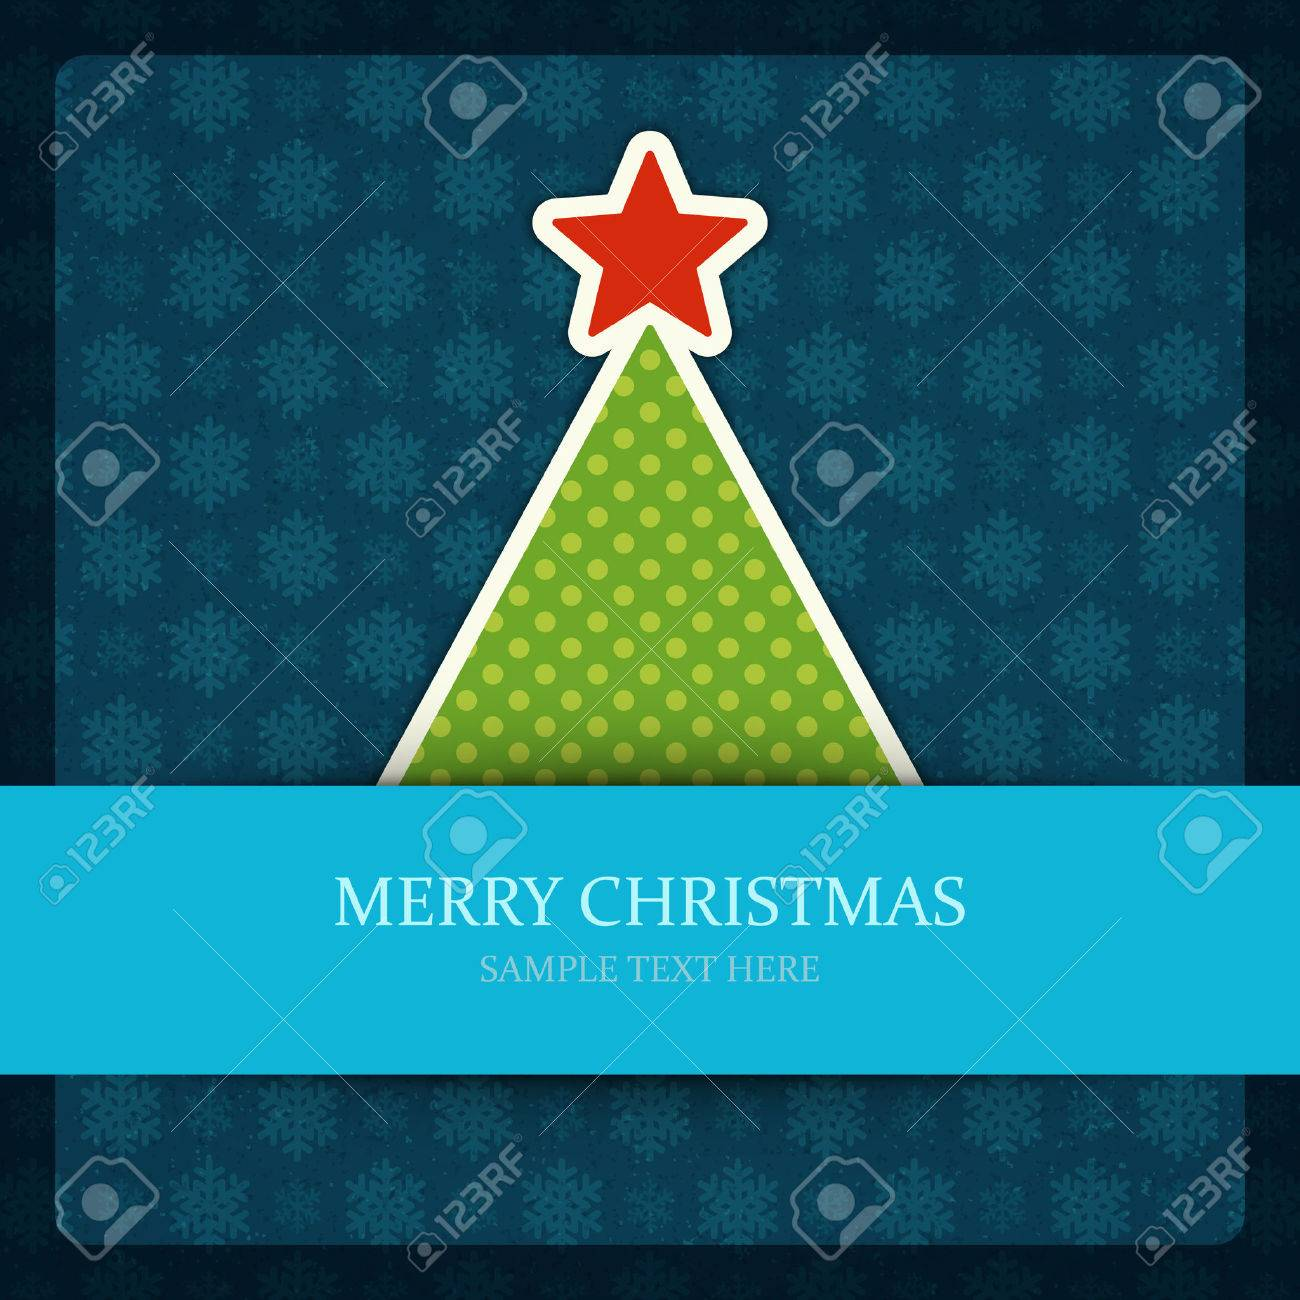 Christmas tree vector background  Christmas card or invitation Stock Vector - 22964525